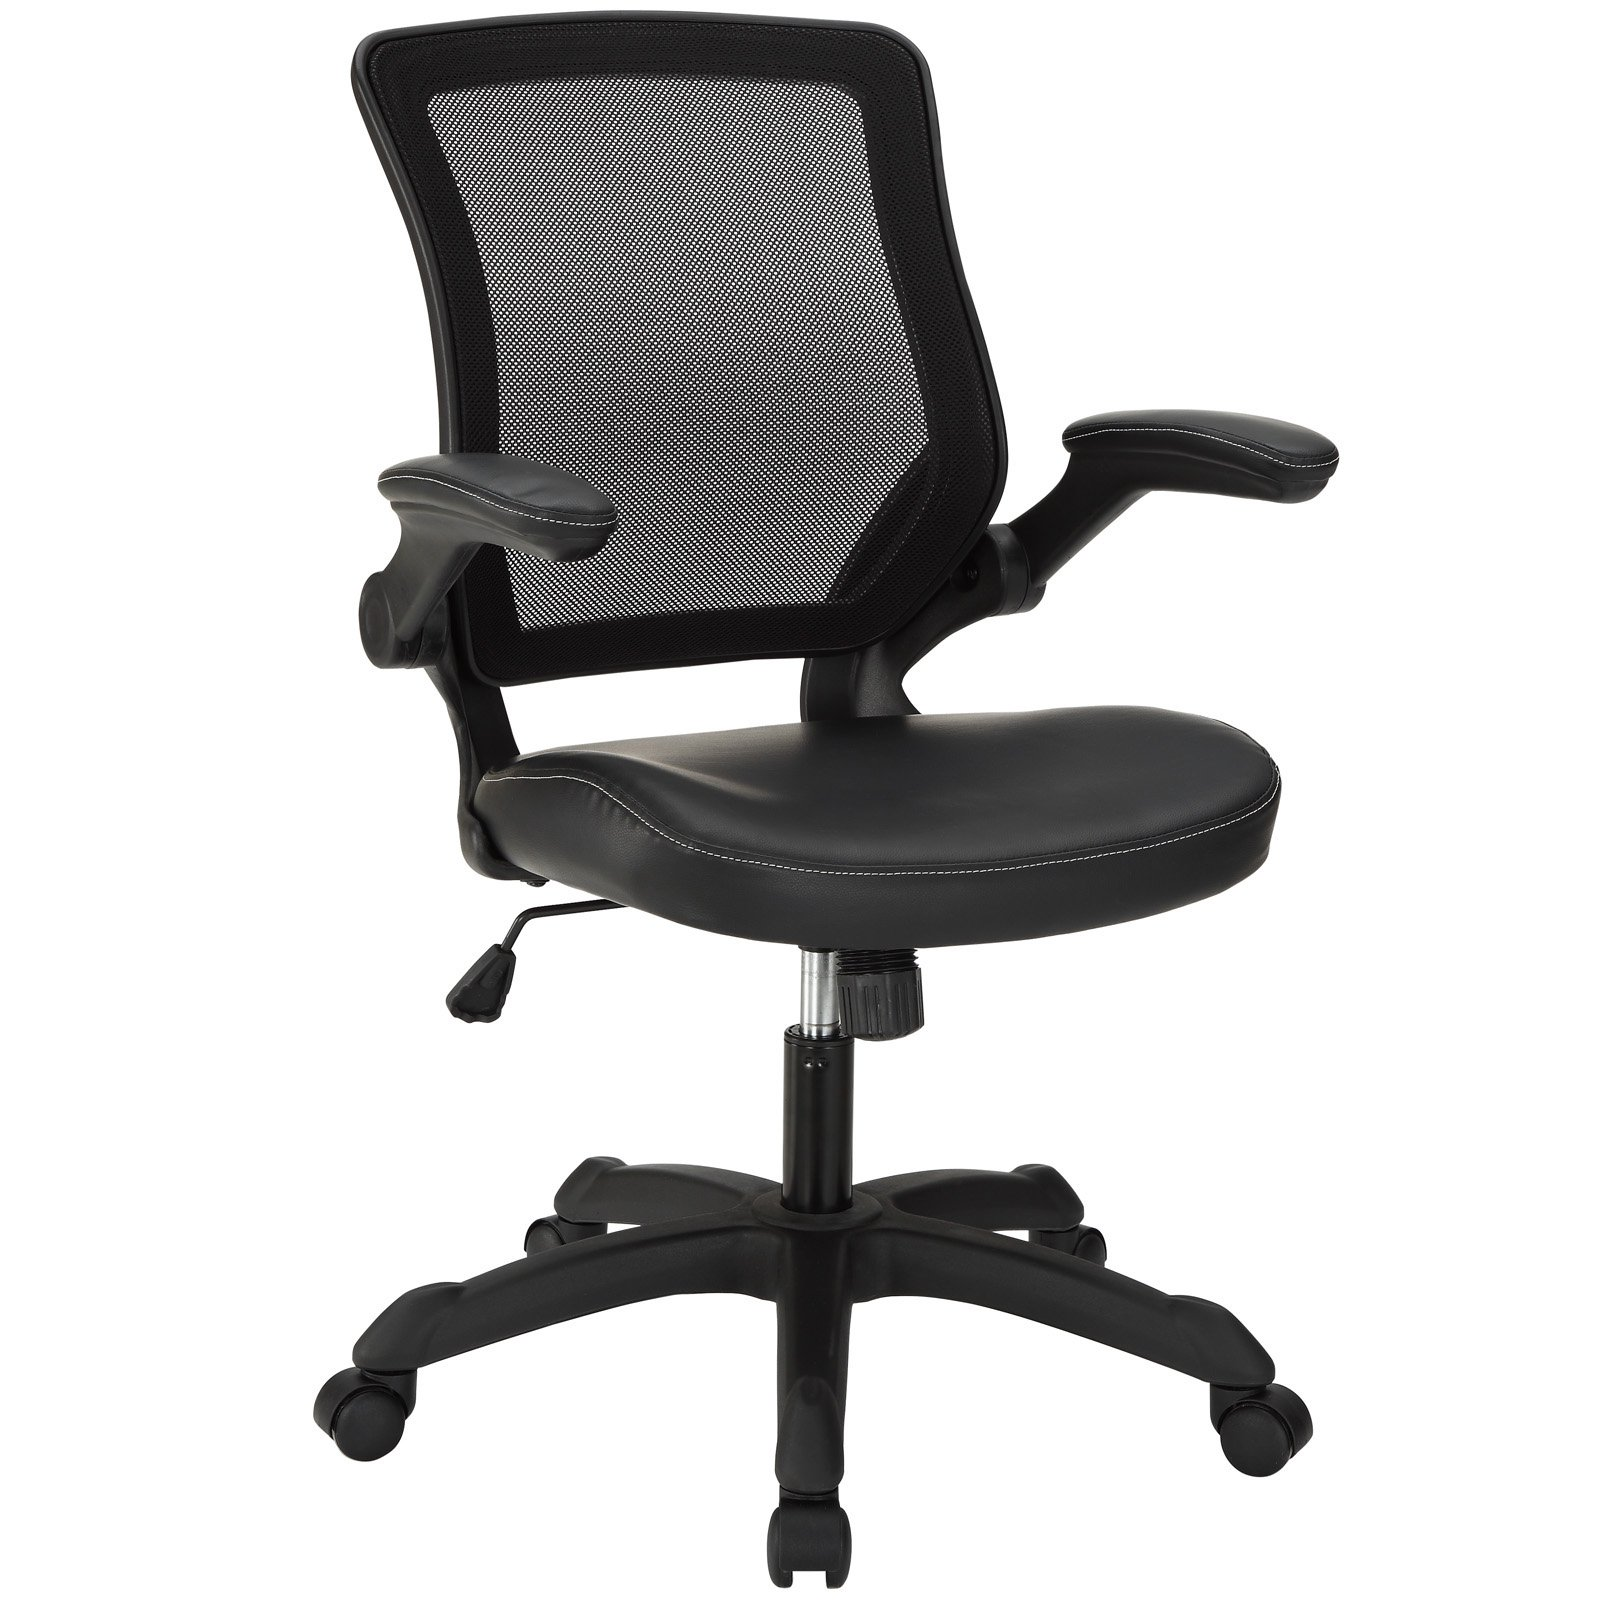 Modway Veer Office Chair with Flip-up Arms